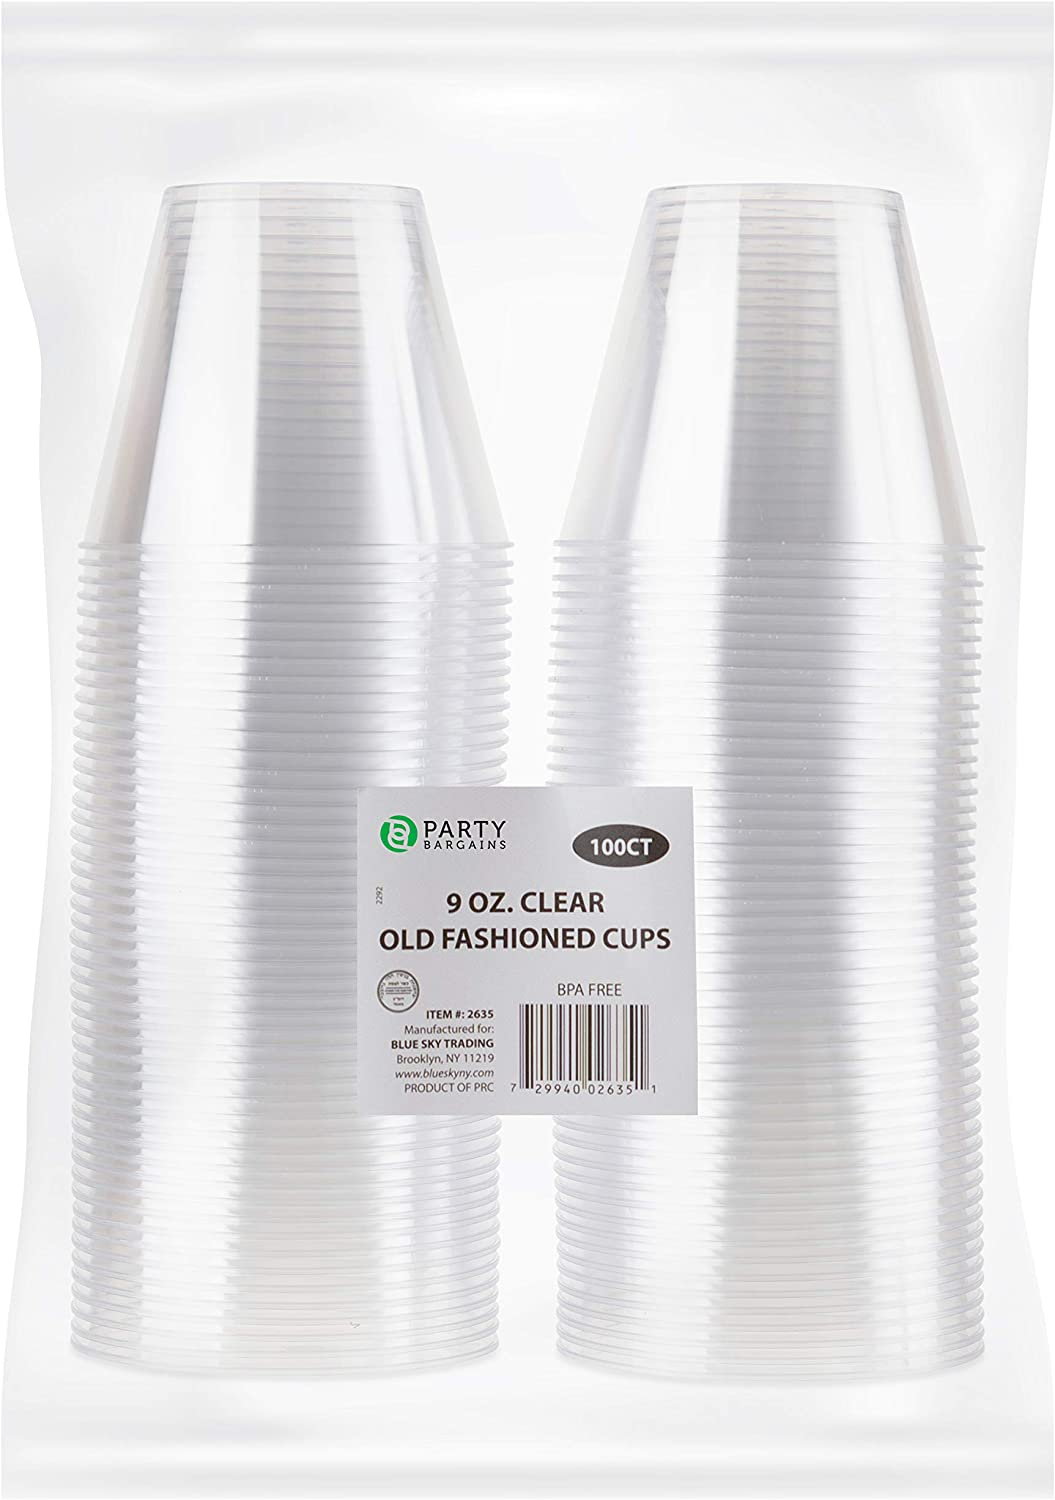 Crystal Clear Plastic Cups | 9 Ounce Disposable Cups | Old Fashioned Tumblers Beverage Party Cup Excellent for Wine, Cocktails & Punch | 100 Count